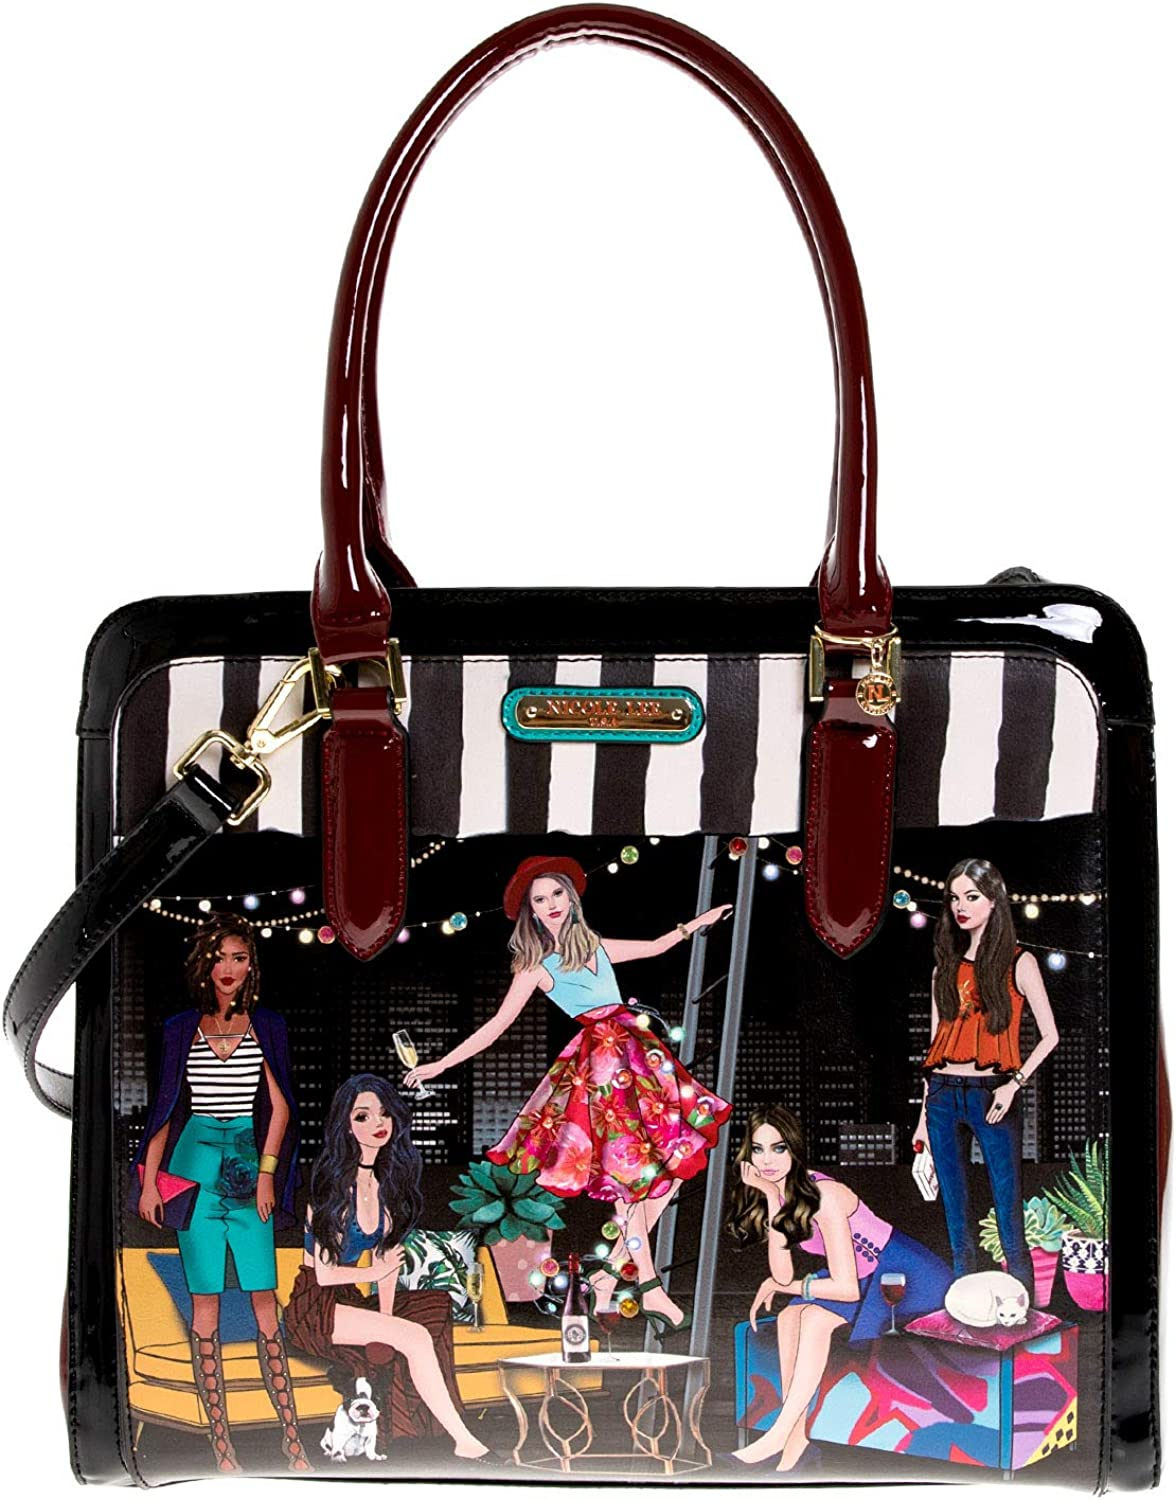 Stylish Printed Briefcase Satchel Bag For Women With Multiple Compartments